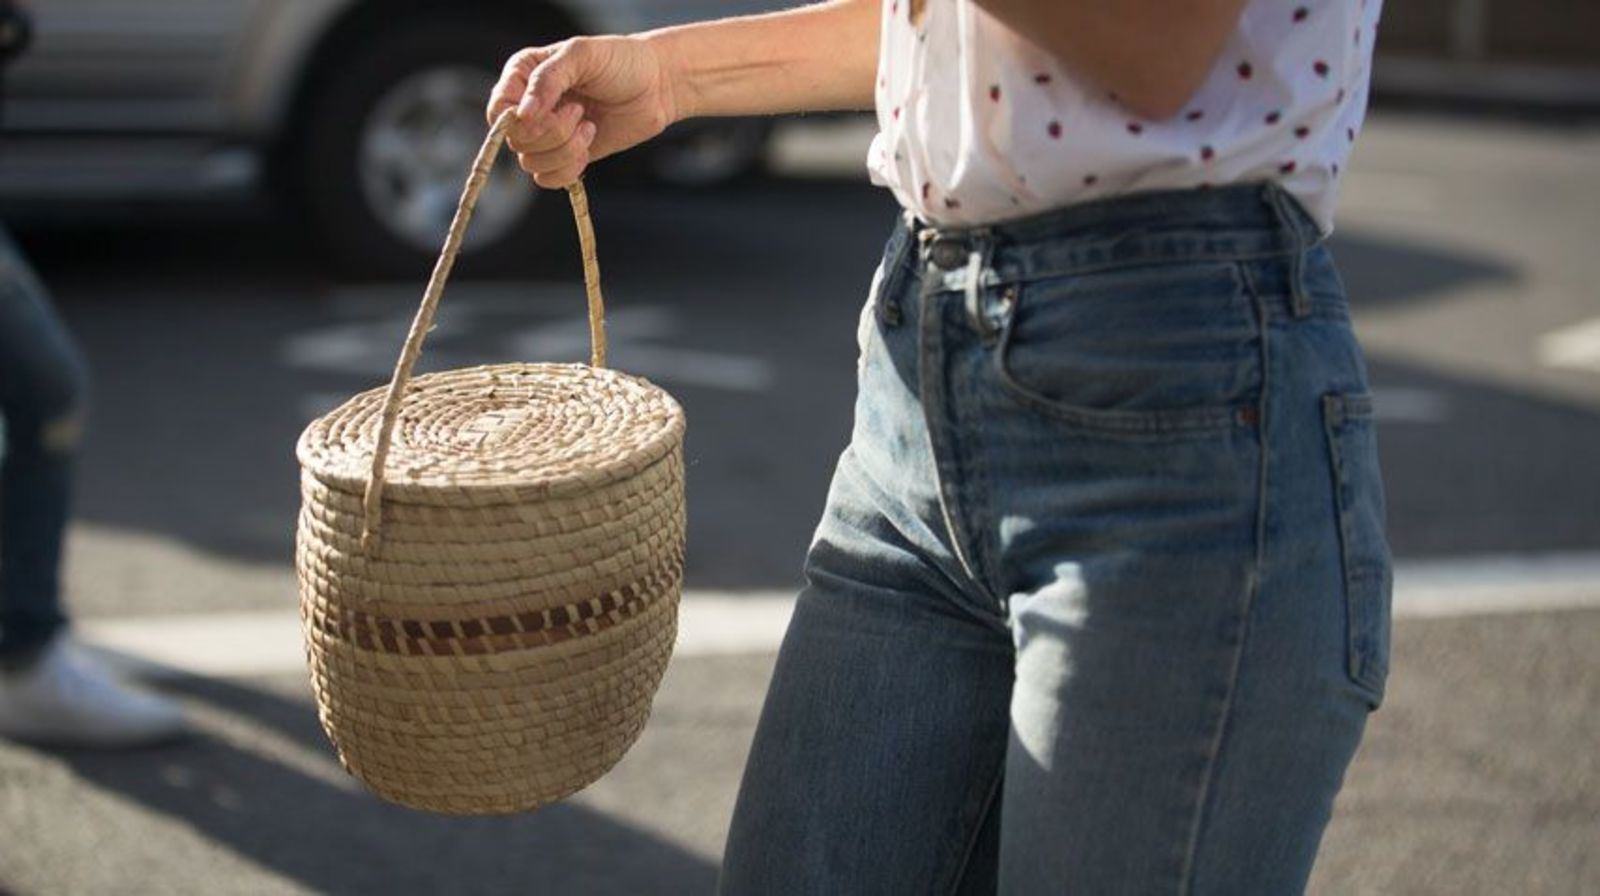 Just For The Beach Proof The Basket Bag Is Not Just For The Beach Fashion Magazine